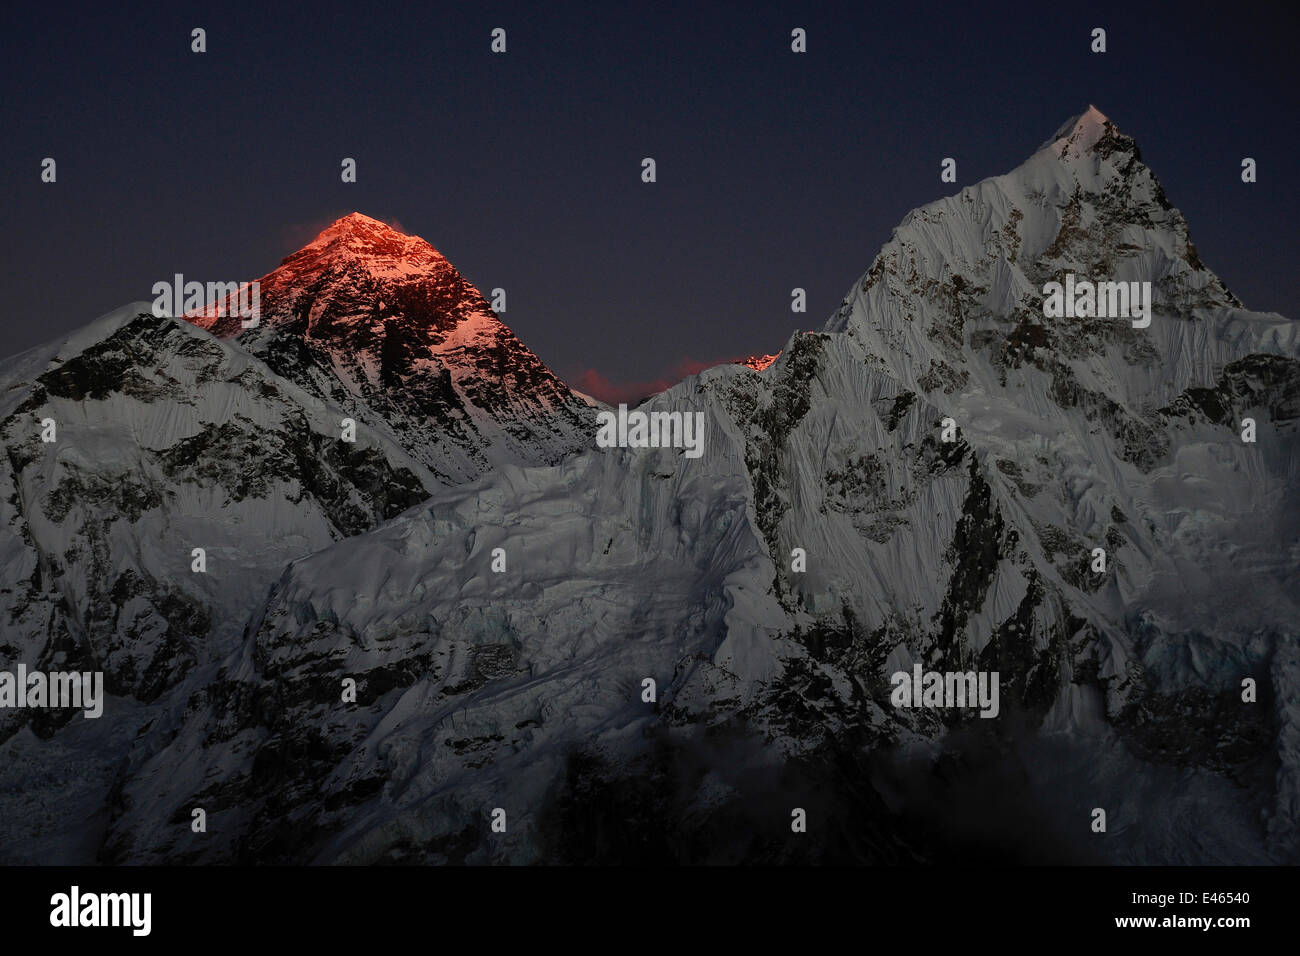 The last light of day illuminating the summit of Mount Everest, Sagarmatha National Park, Khumbu, Himalayas, Nepal, - Stock Image